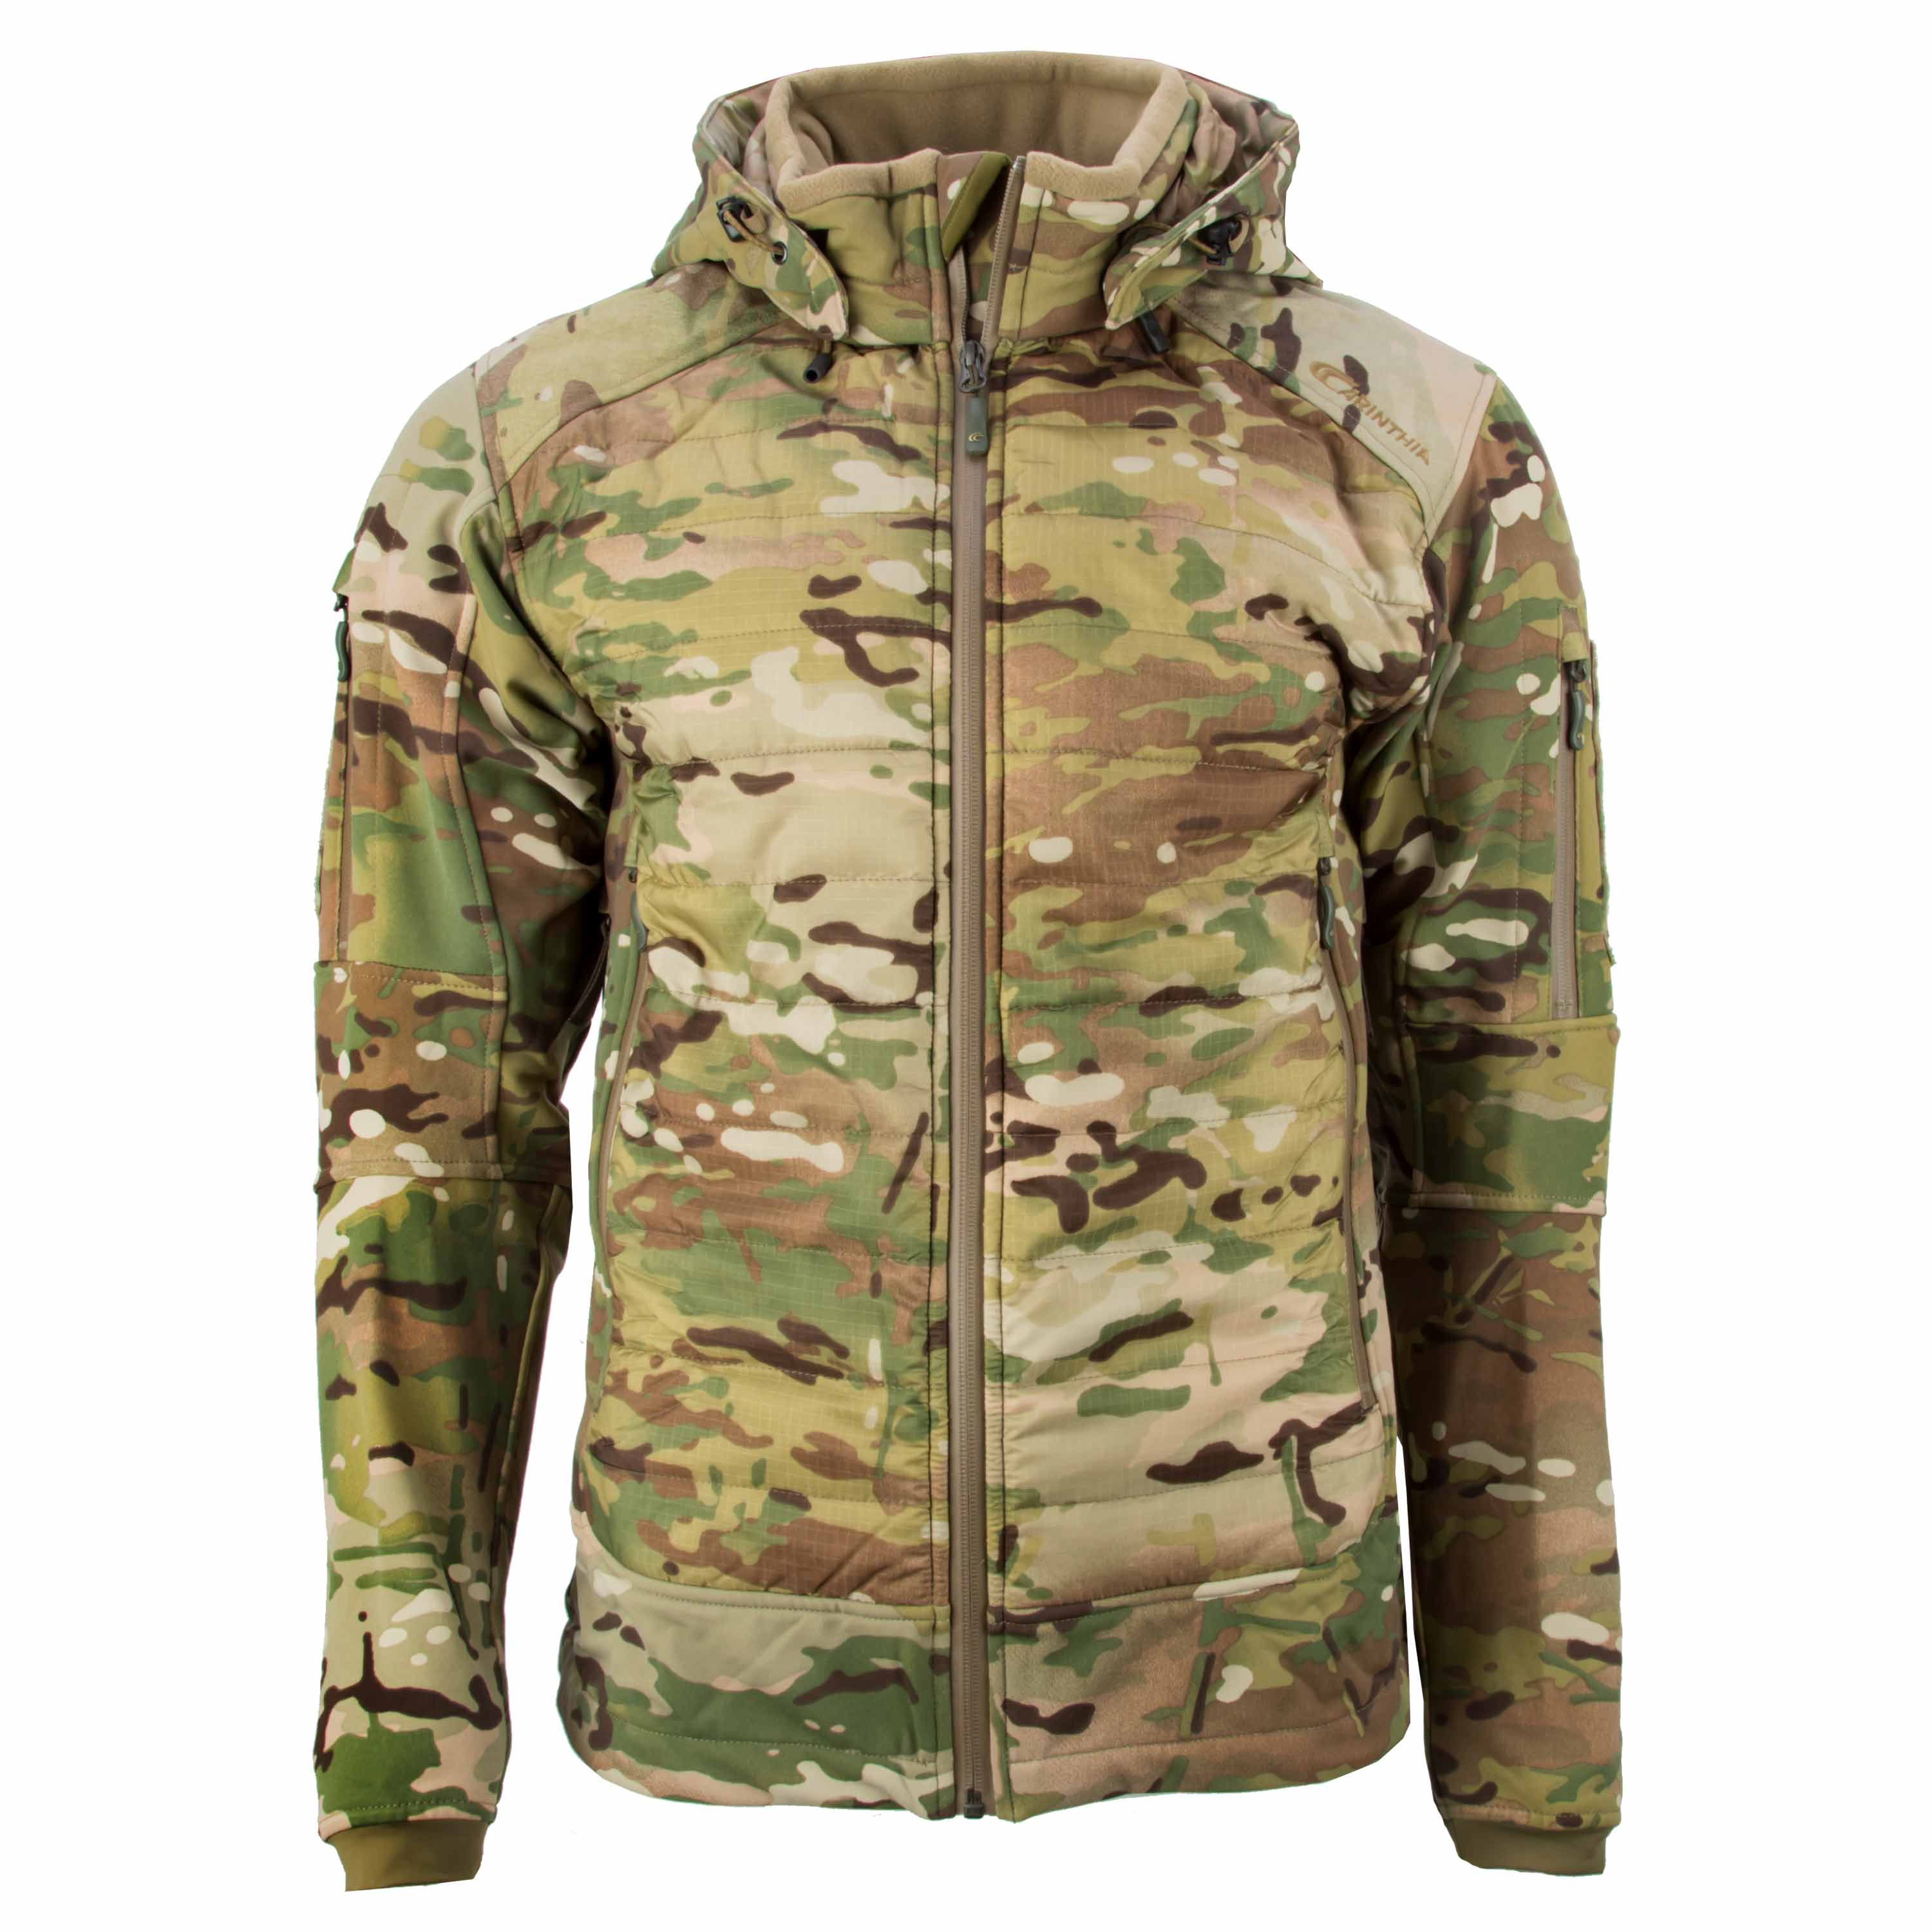 Carinthia Isg 2.0 Jacket SIZE S Olive Thermal Softshell Outdoor J